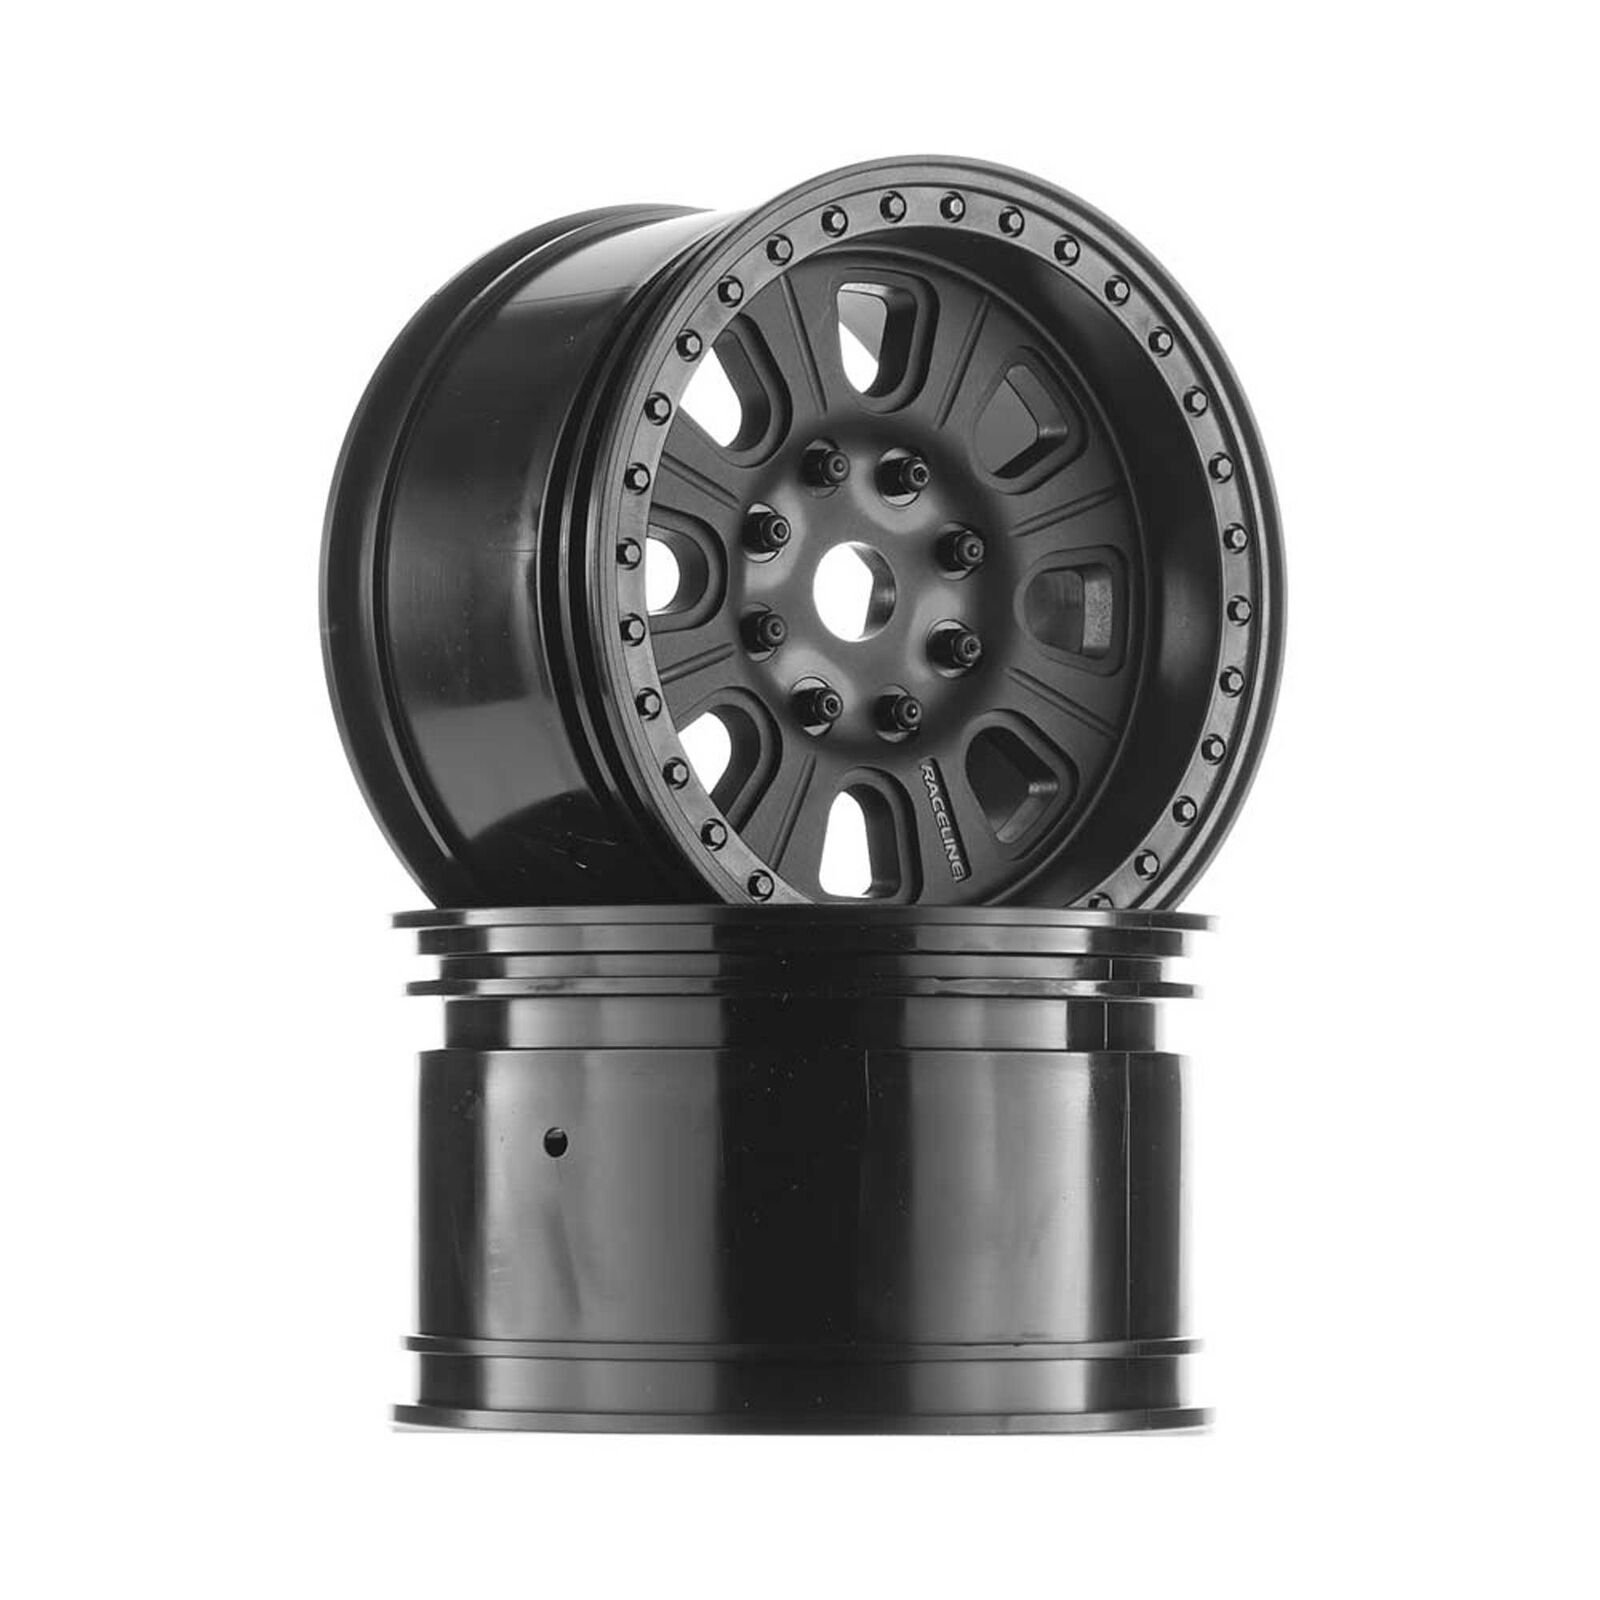 1/8 3.8 Raceline Monster Wheels, 17mm Hex, Black (2): Yeti XL